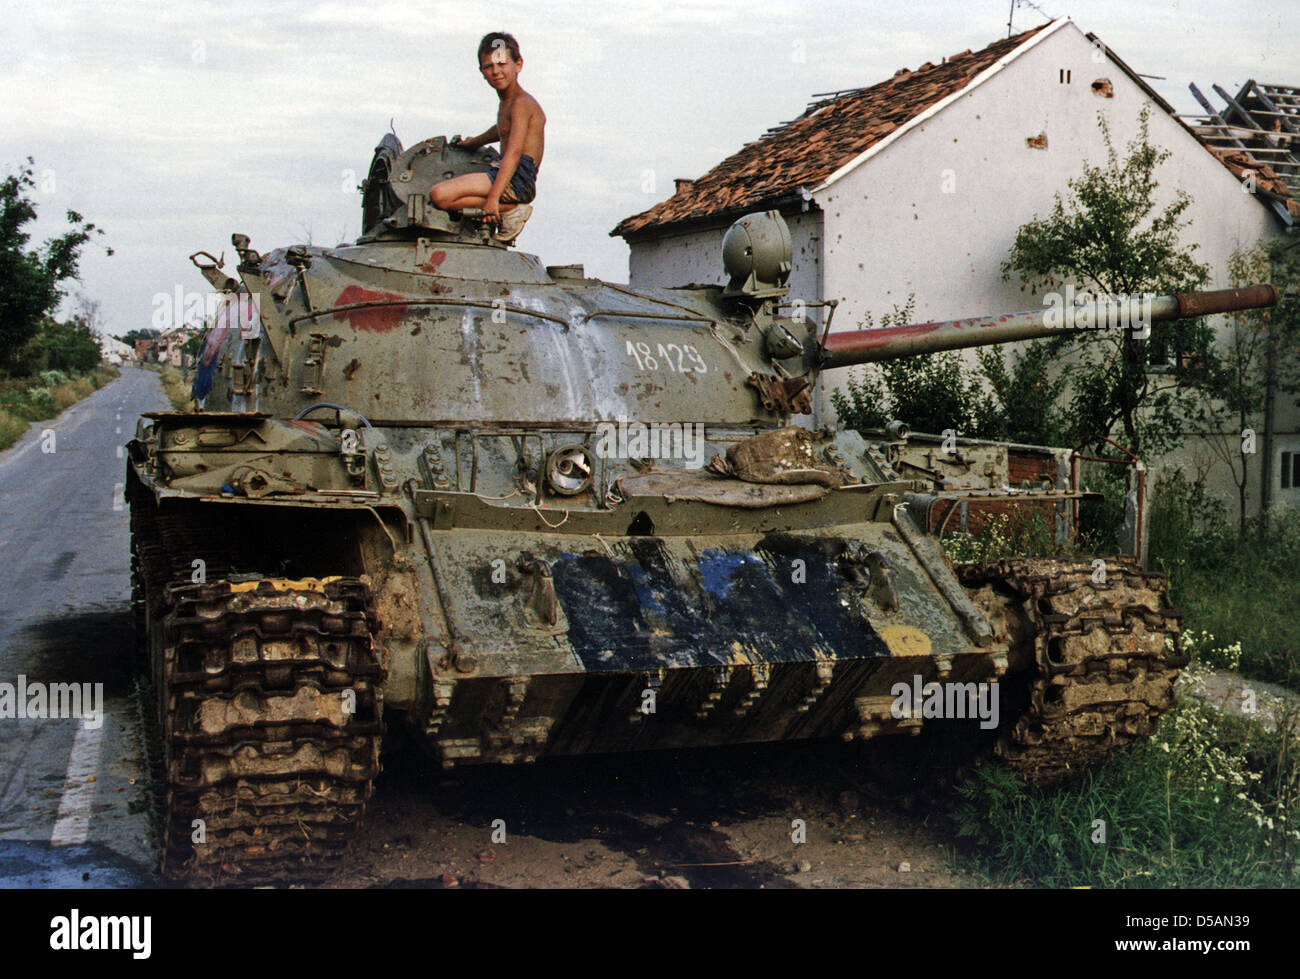 an analysis of the war in bosnia herzegovina which began in 1992 The bosnian war was an international armed conflict that took place in bosnia and herzegovina between 1992 and 1995 following a number of violent incidents in early 1992, the war is commonly viewed as having started on 6 april 1992.